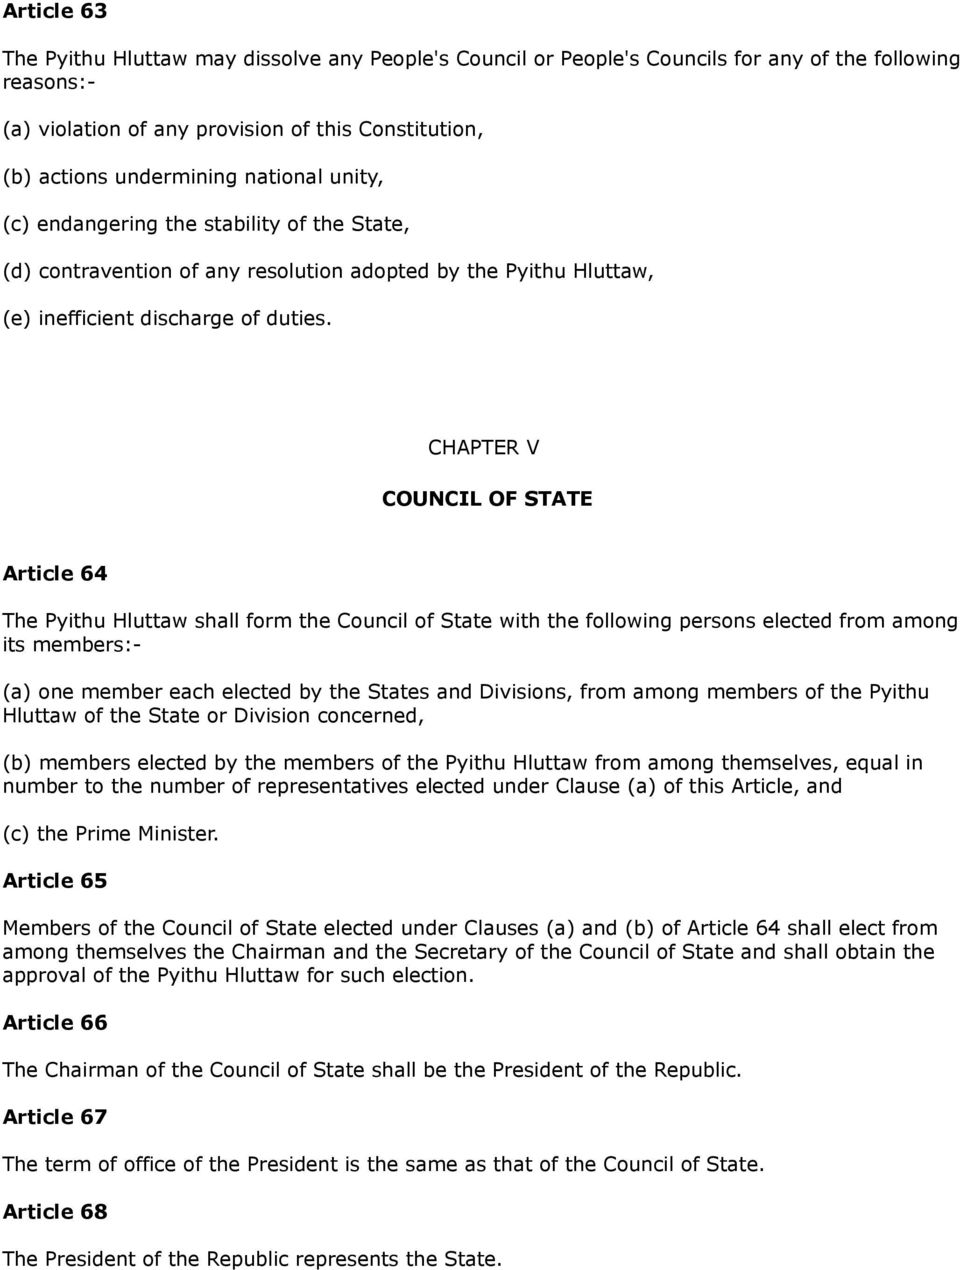 CHAPTER V COUNCIL OF STATE Article 64 The Pyithu Hluttaw shall form the Council of State with the following persons elected from among its members:- (a) one member each elected by the States and